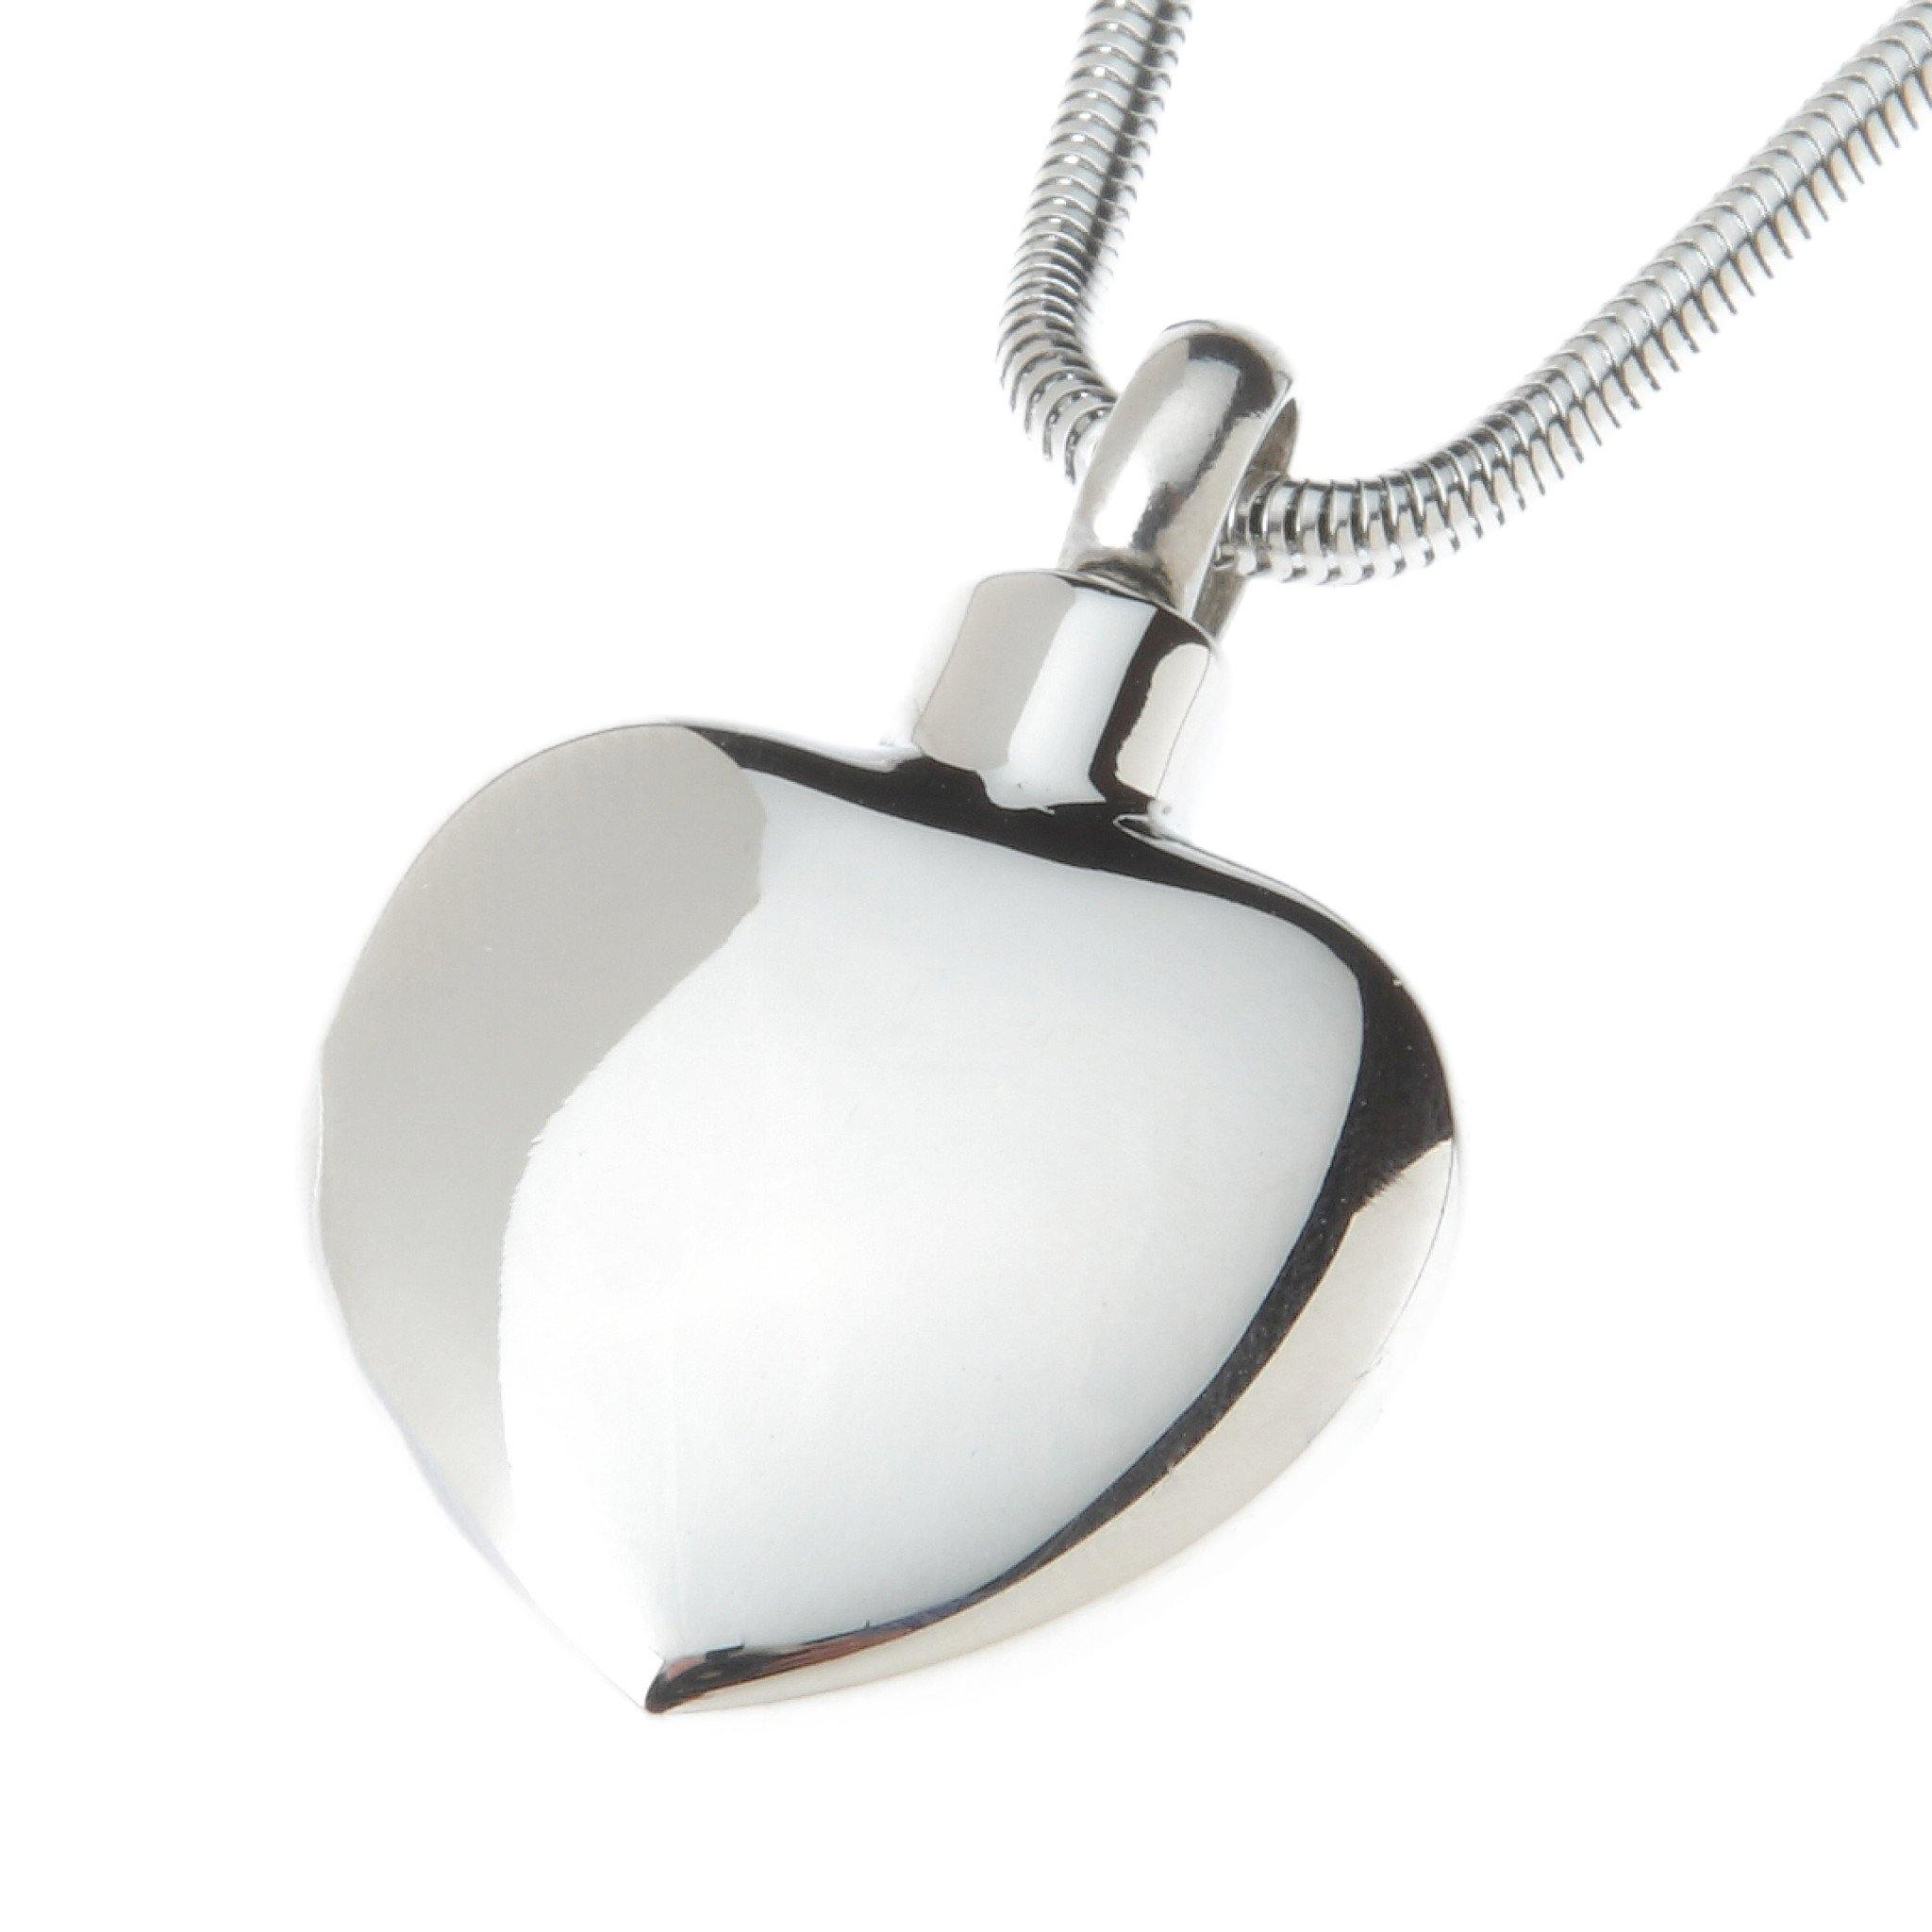 Chelsea Cremation Ashes Pendant Design 08 - Urns UK